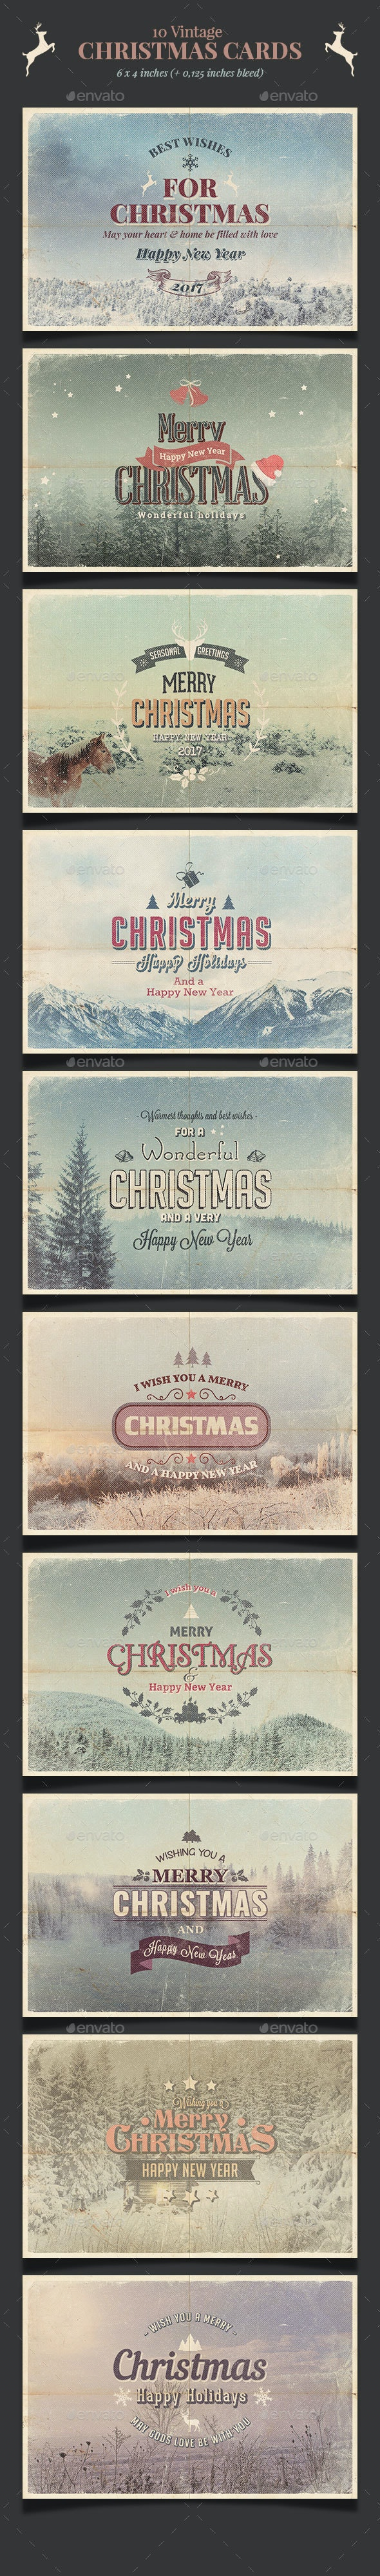 10 Vintage Christmas Cards / Backgrounds PSD - Cards & Invites Print Templates